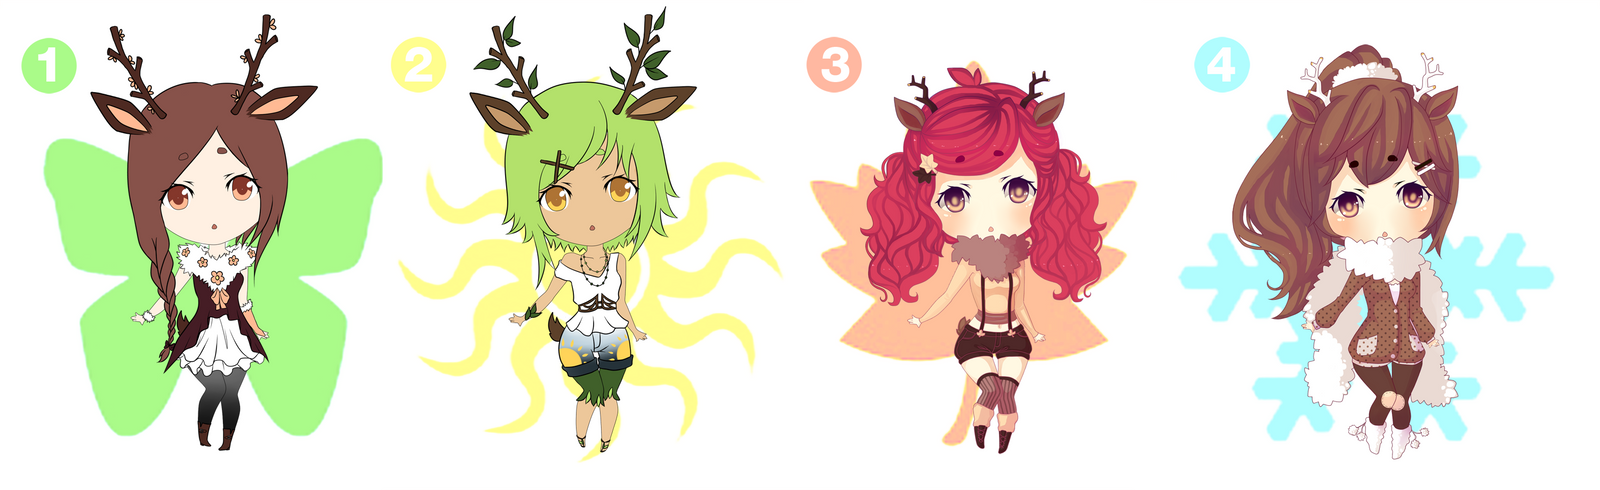 Sawsbuck Themed Adopts 2/4 [Open] by Chiri-nyan